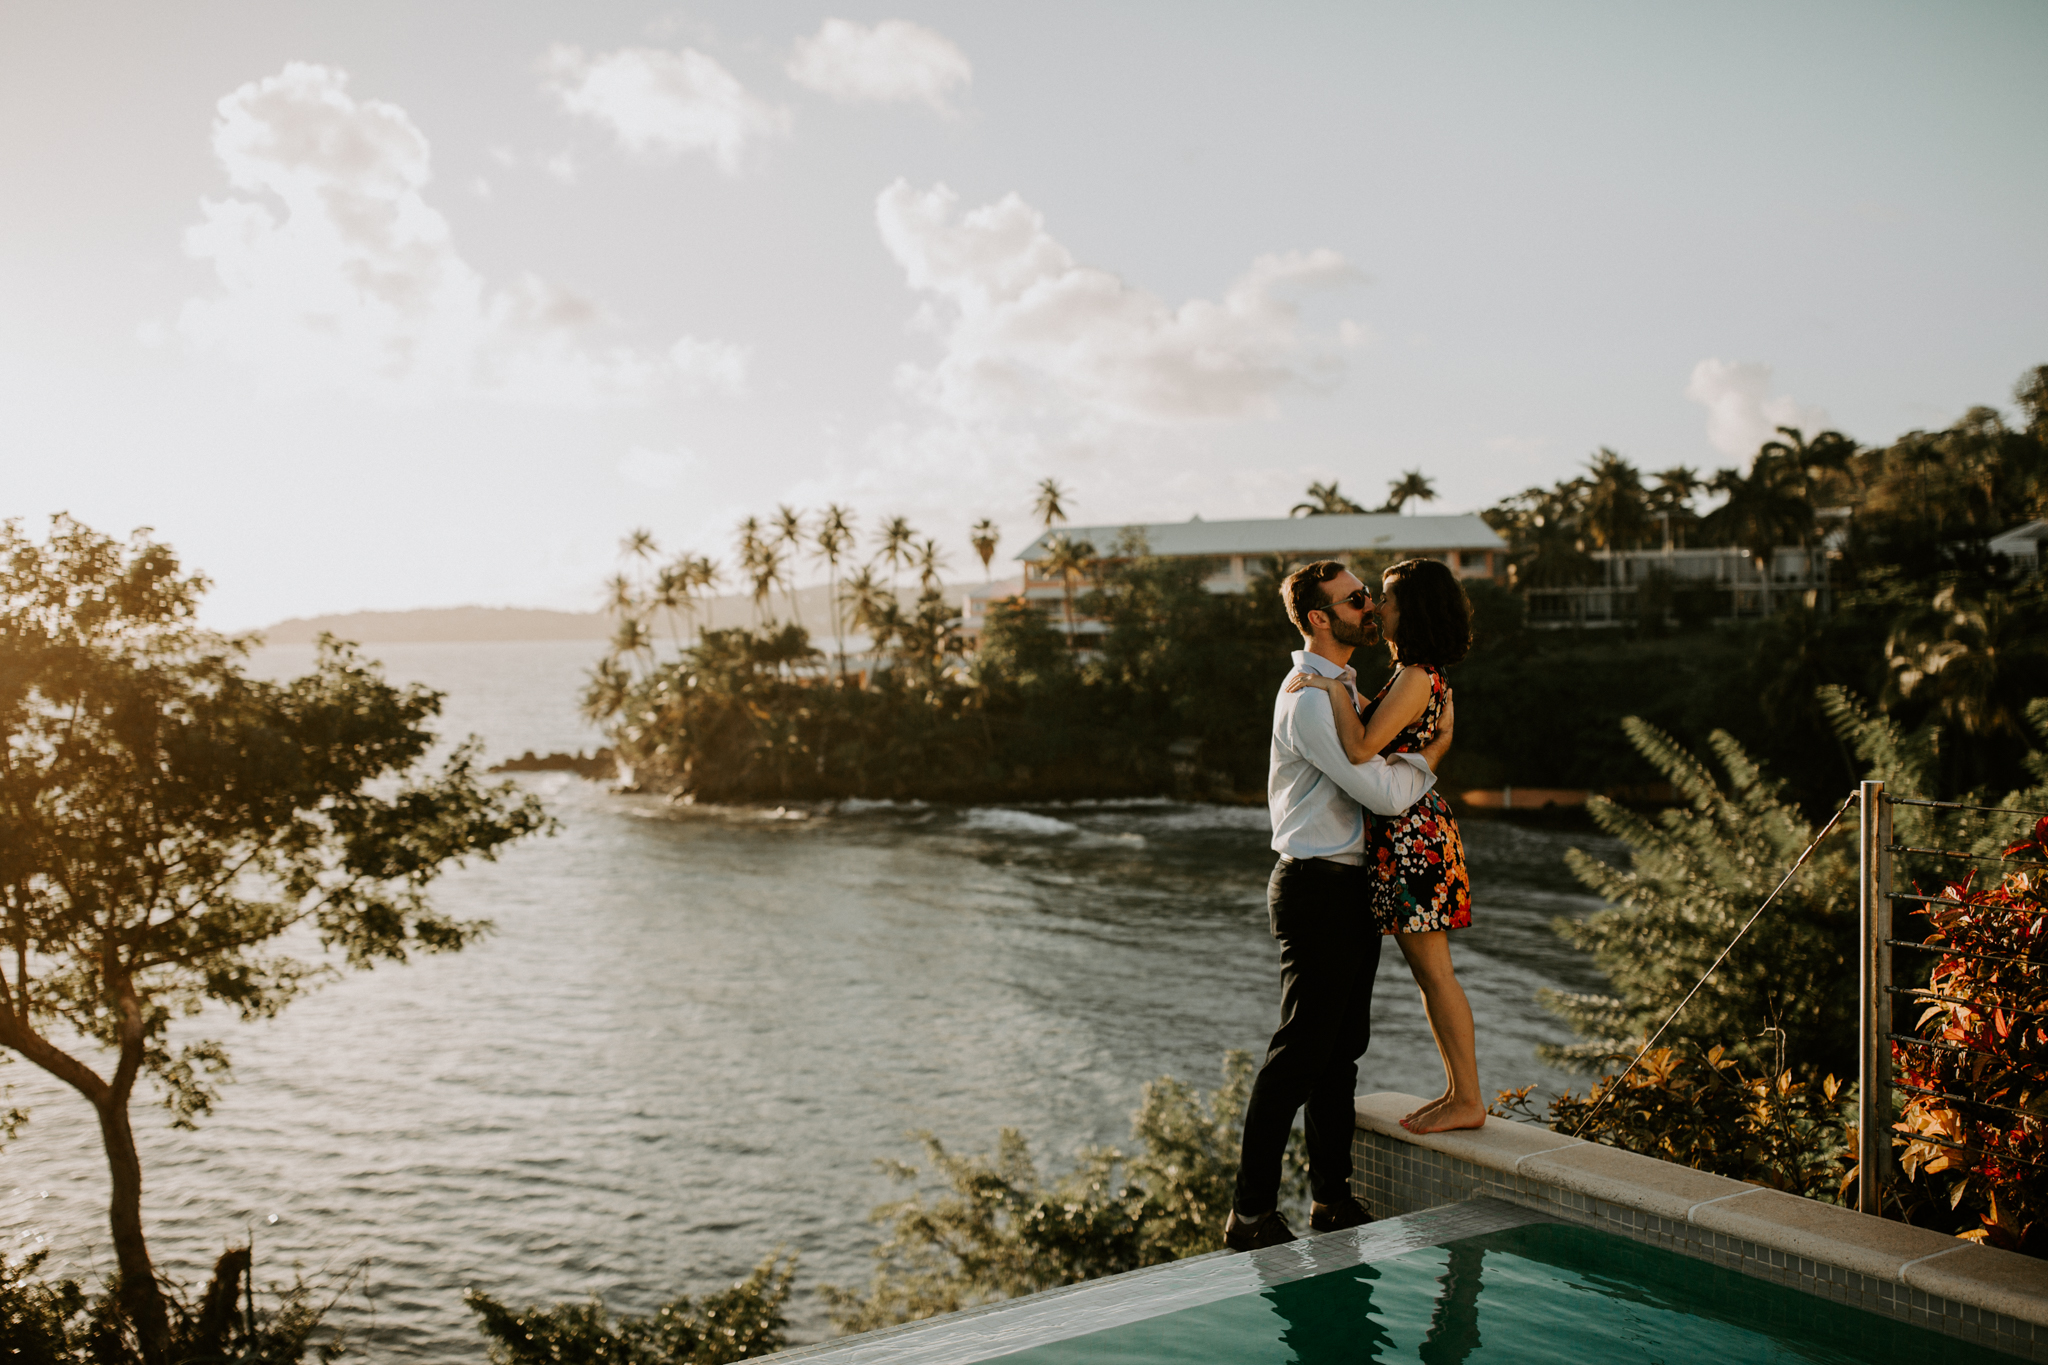 Beach Engagement at sunset in Tobago